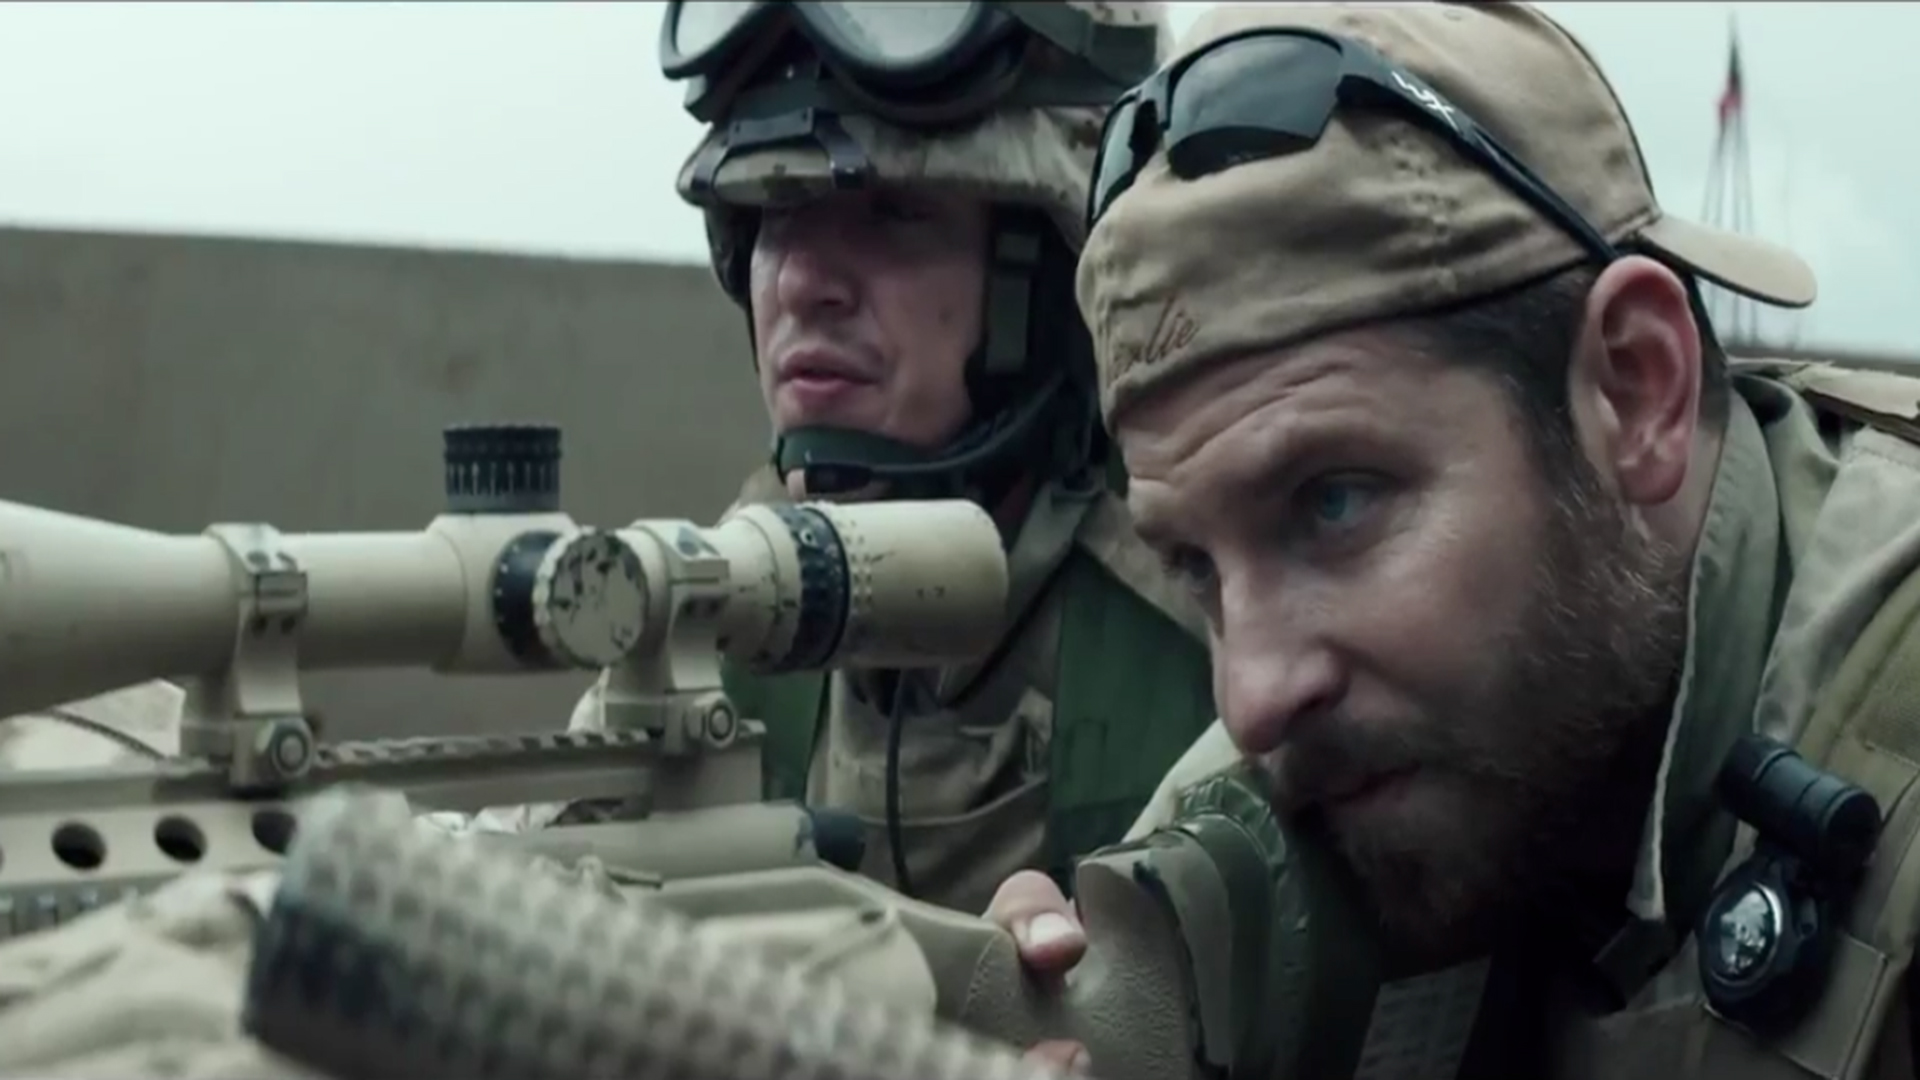 Movie Chris Kyle as portrayed by Bradley Cooper.